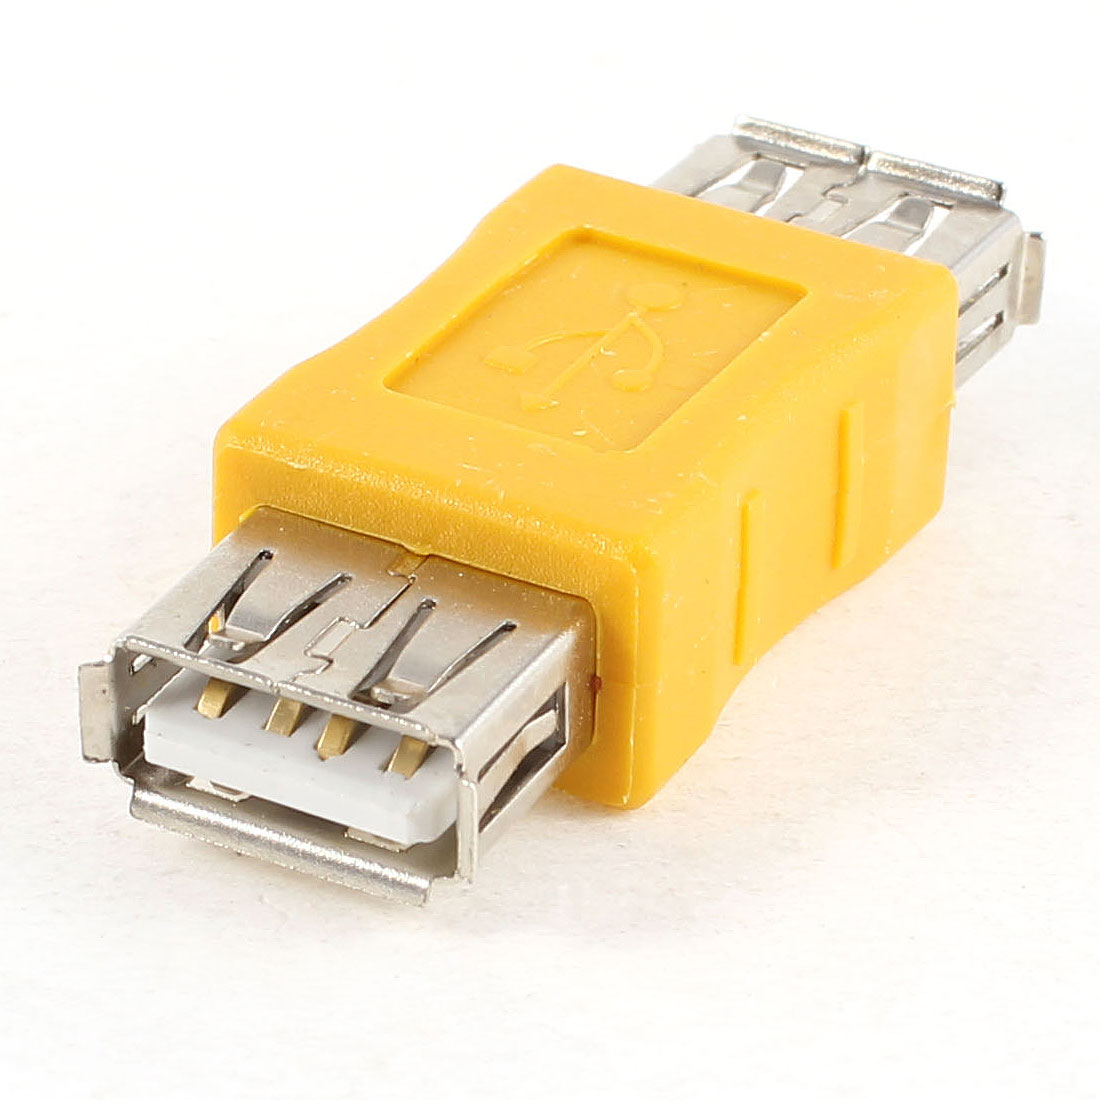 USB 2.0 Type A Female to Female Connecting Adapter Yellow